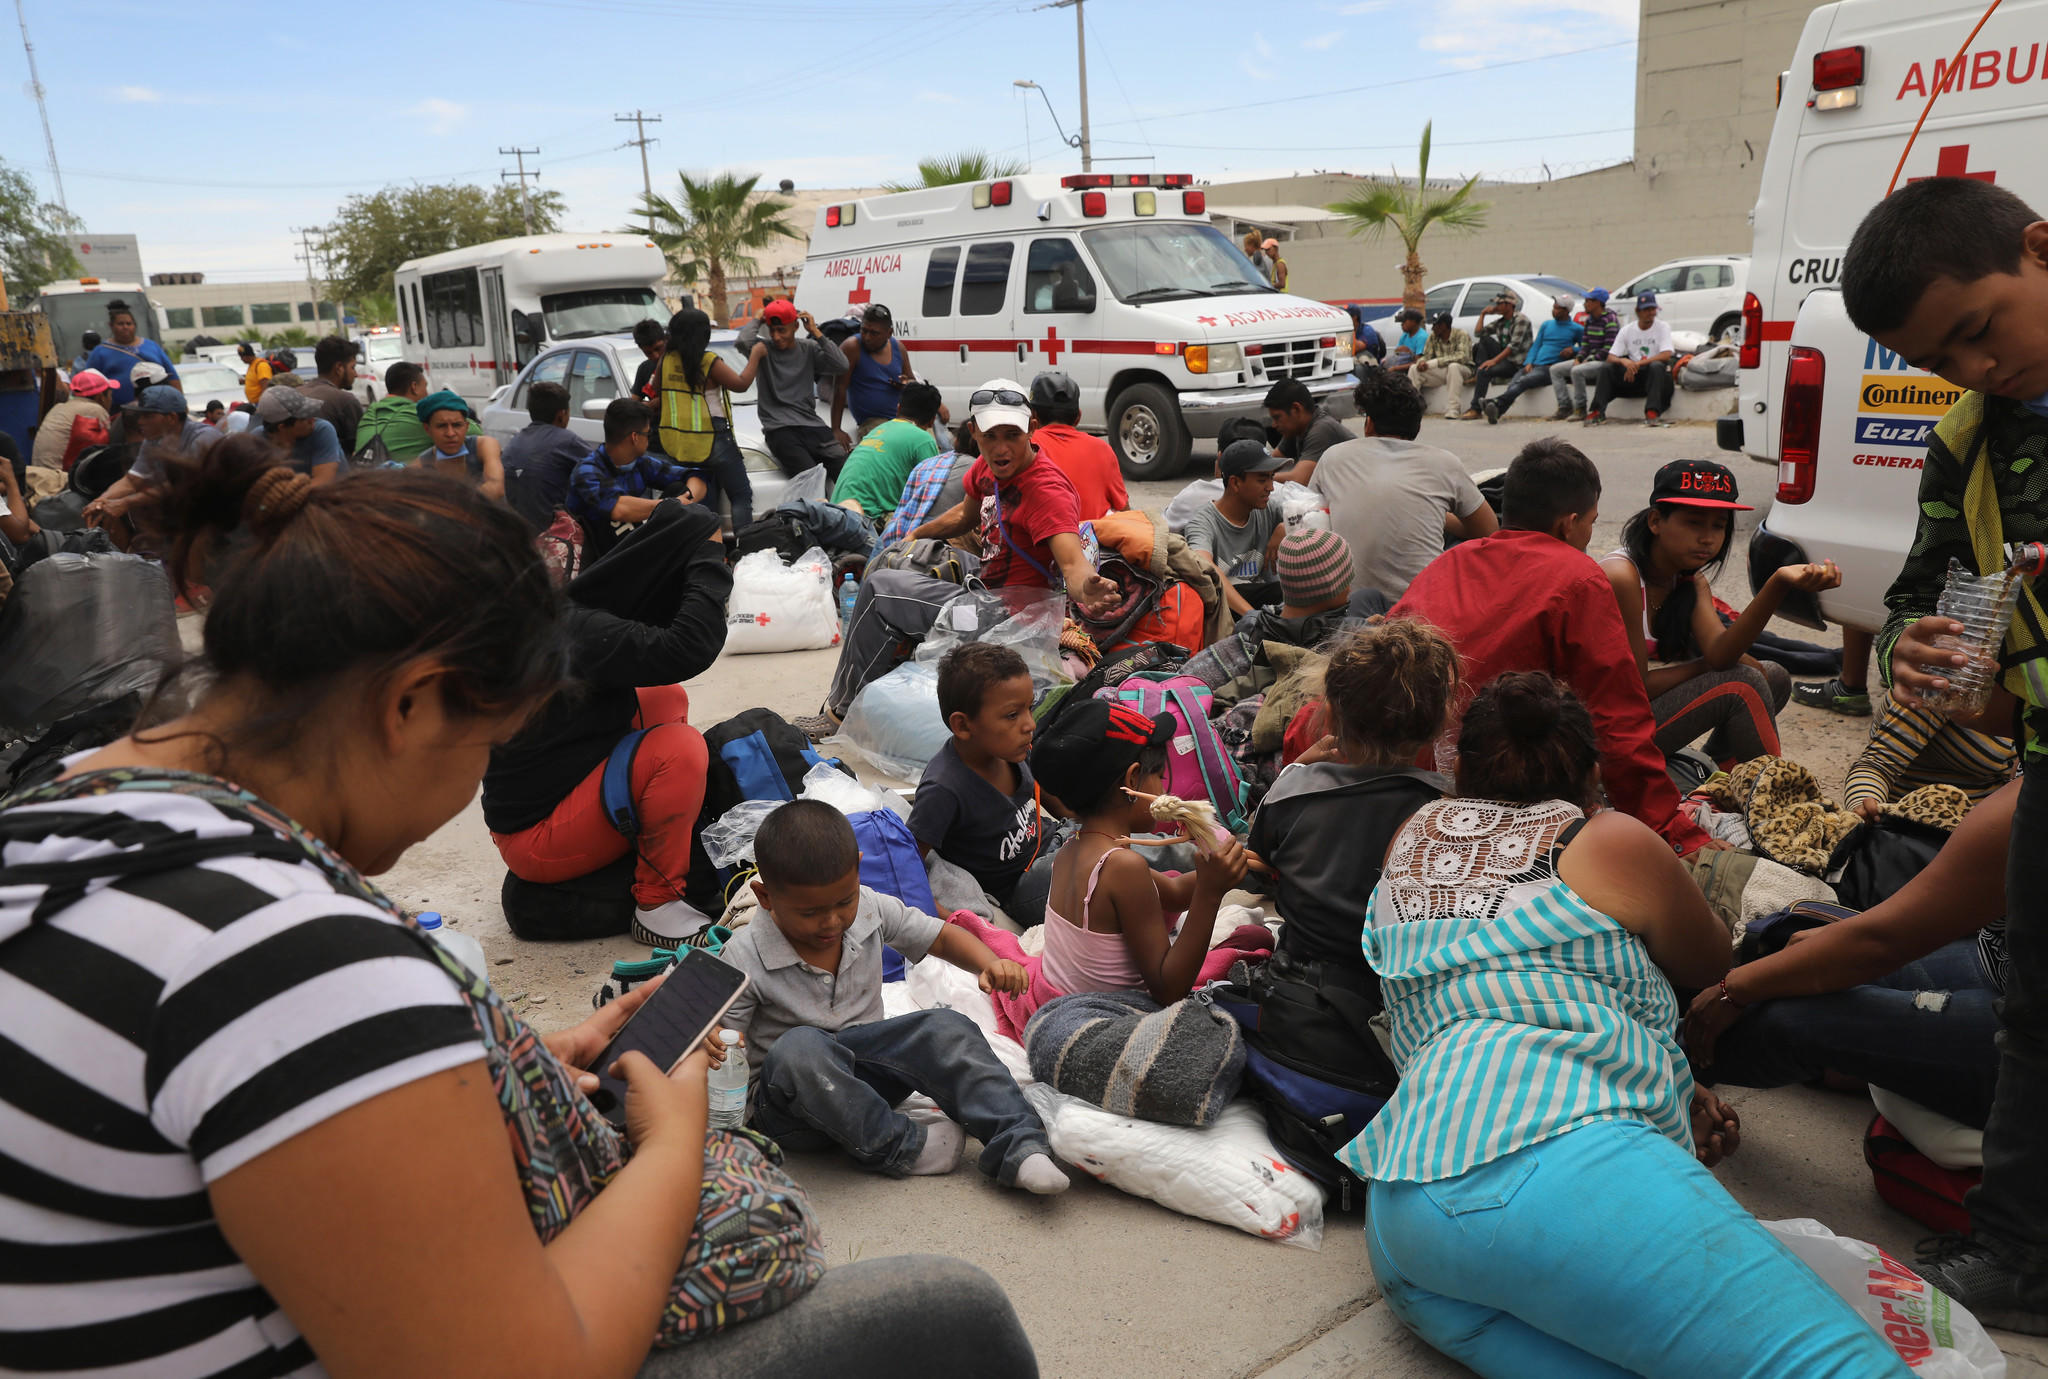 Trump in tension as migrants arrive in Tijuana in caravans